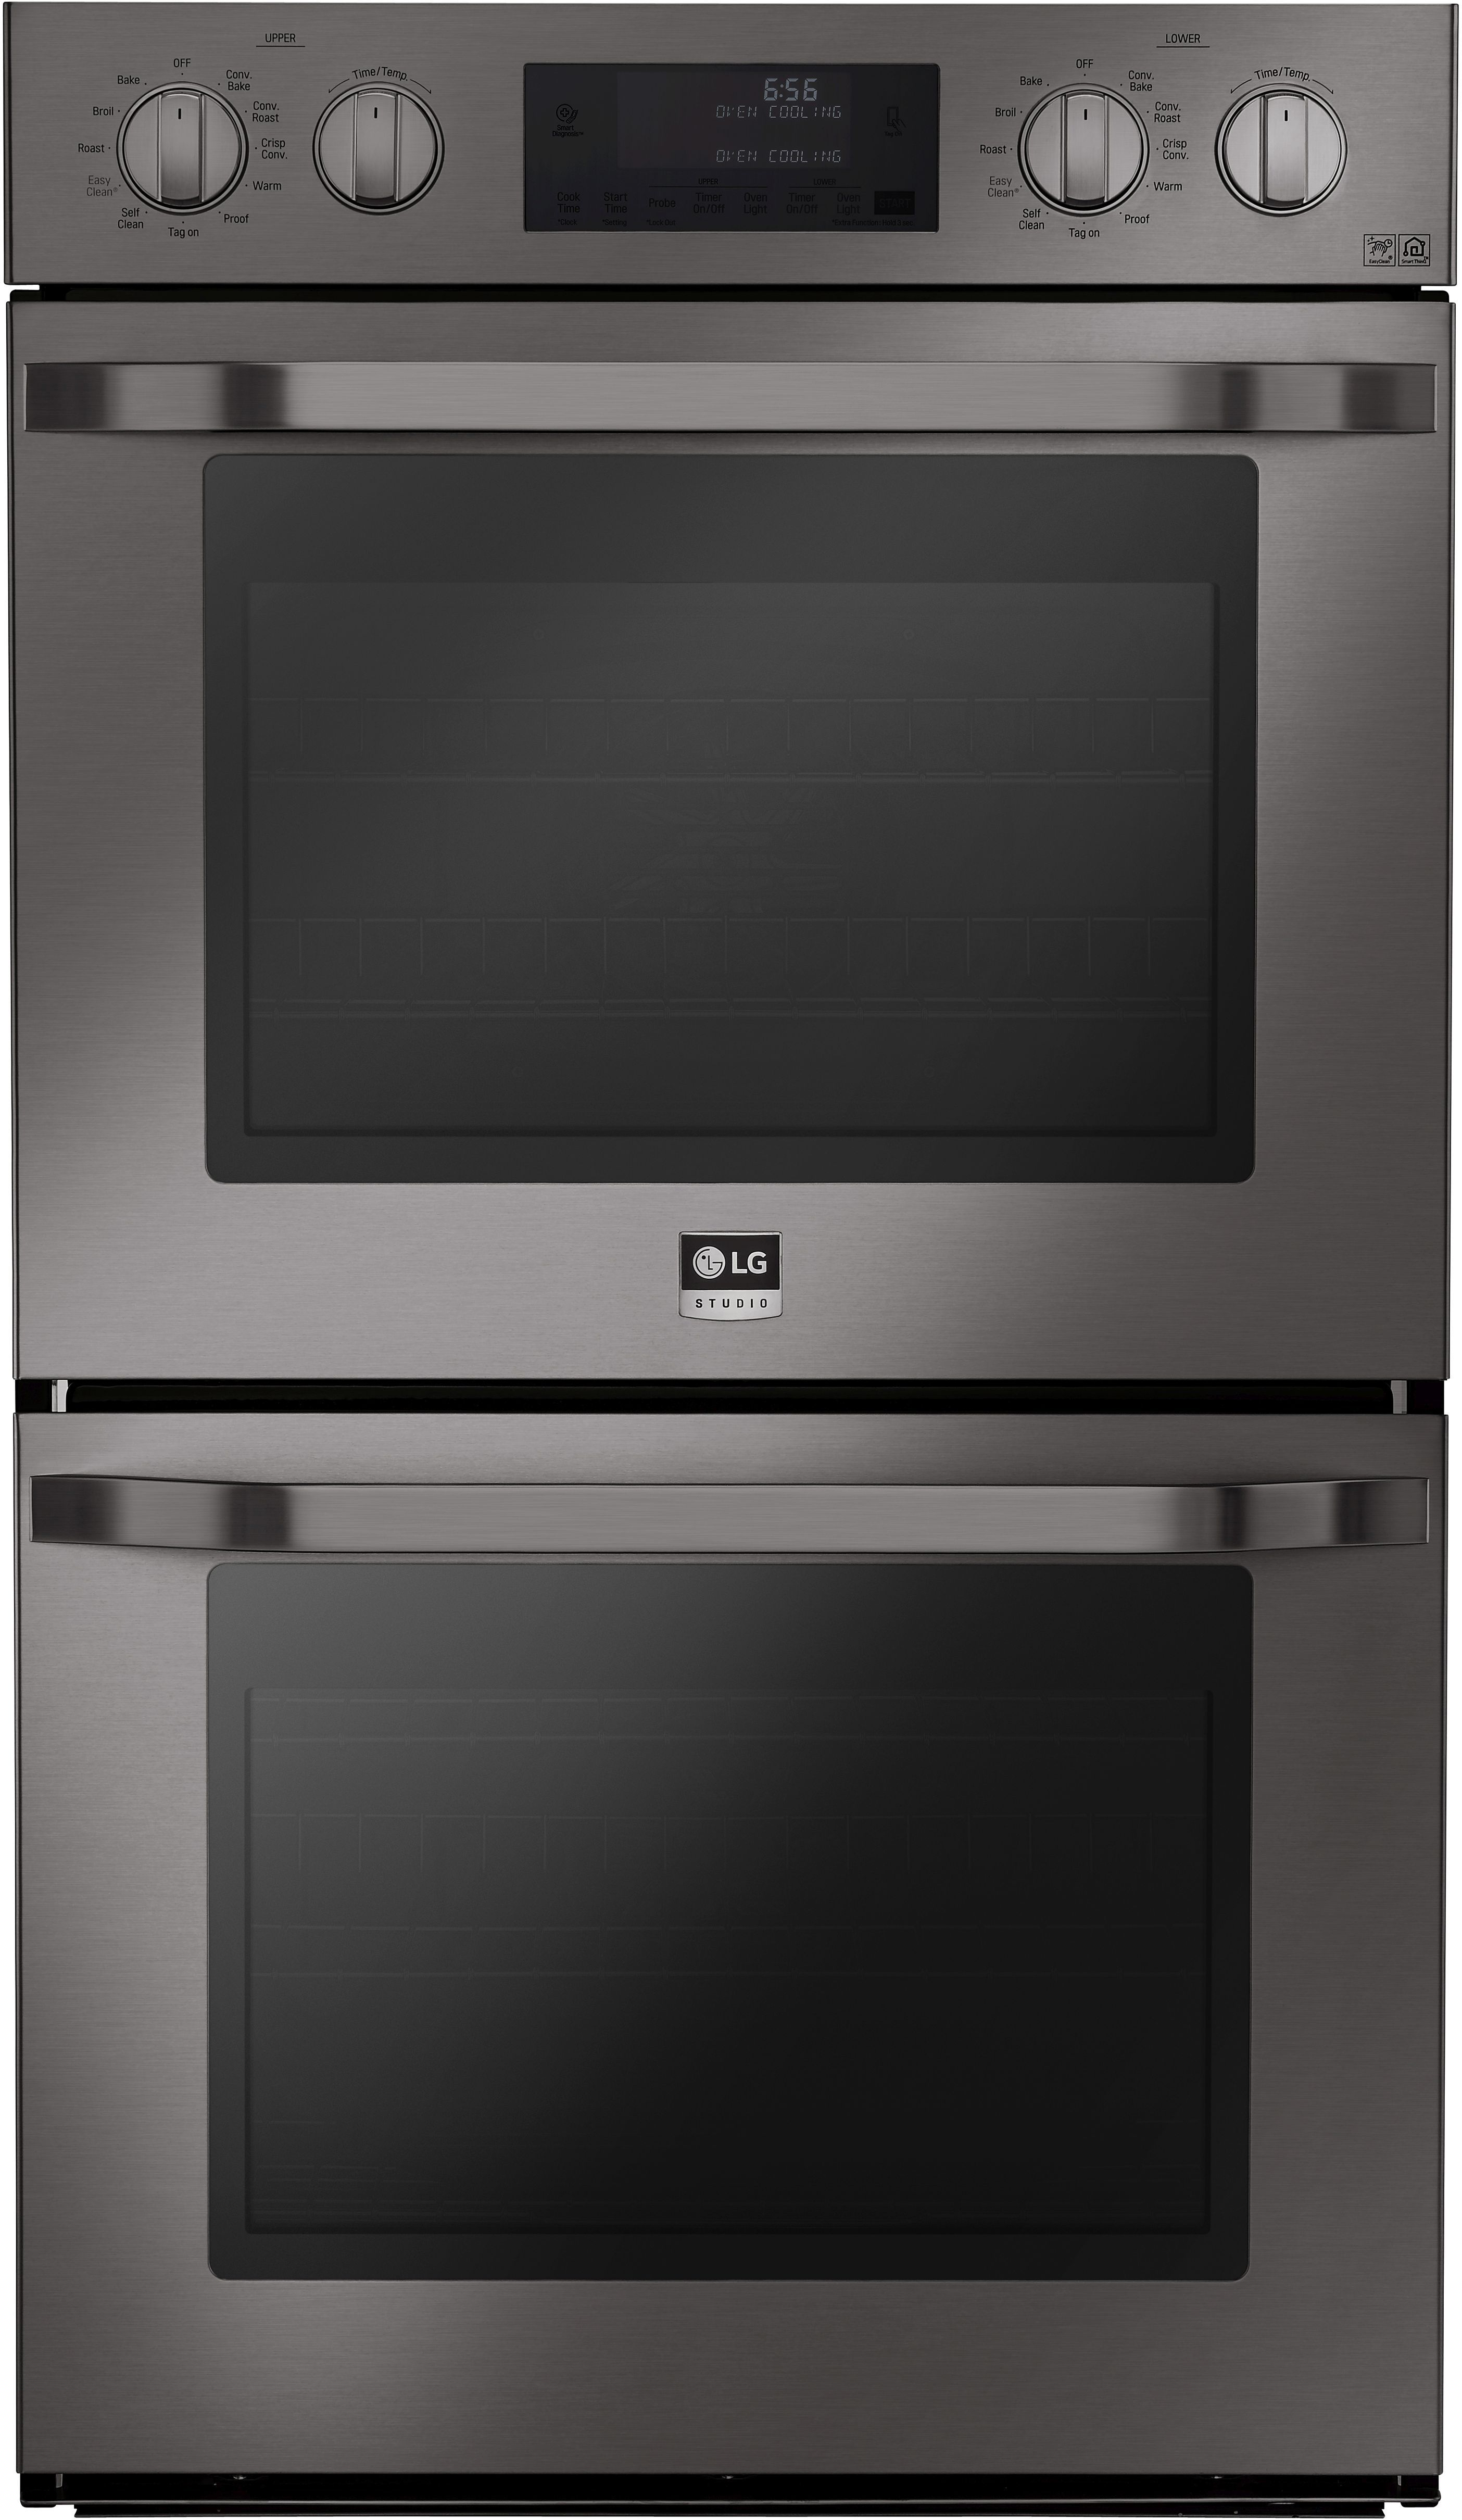 LG 30 Black Stainless Steel Single Wall Oven